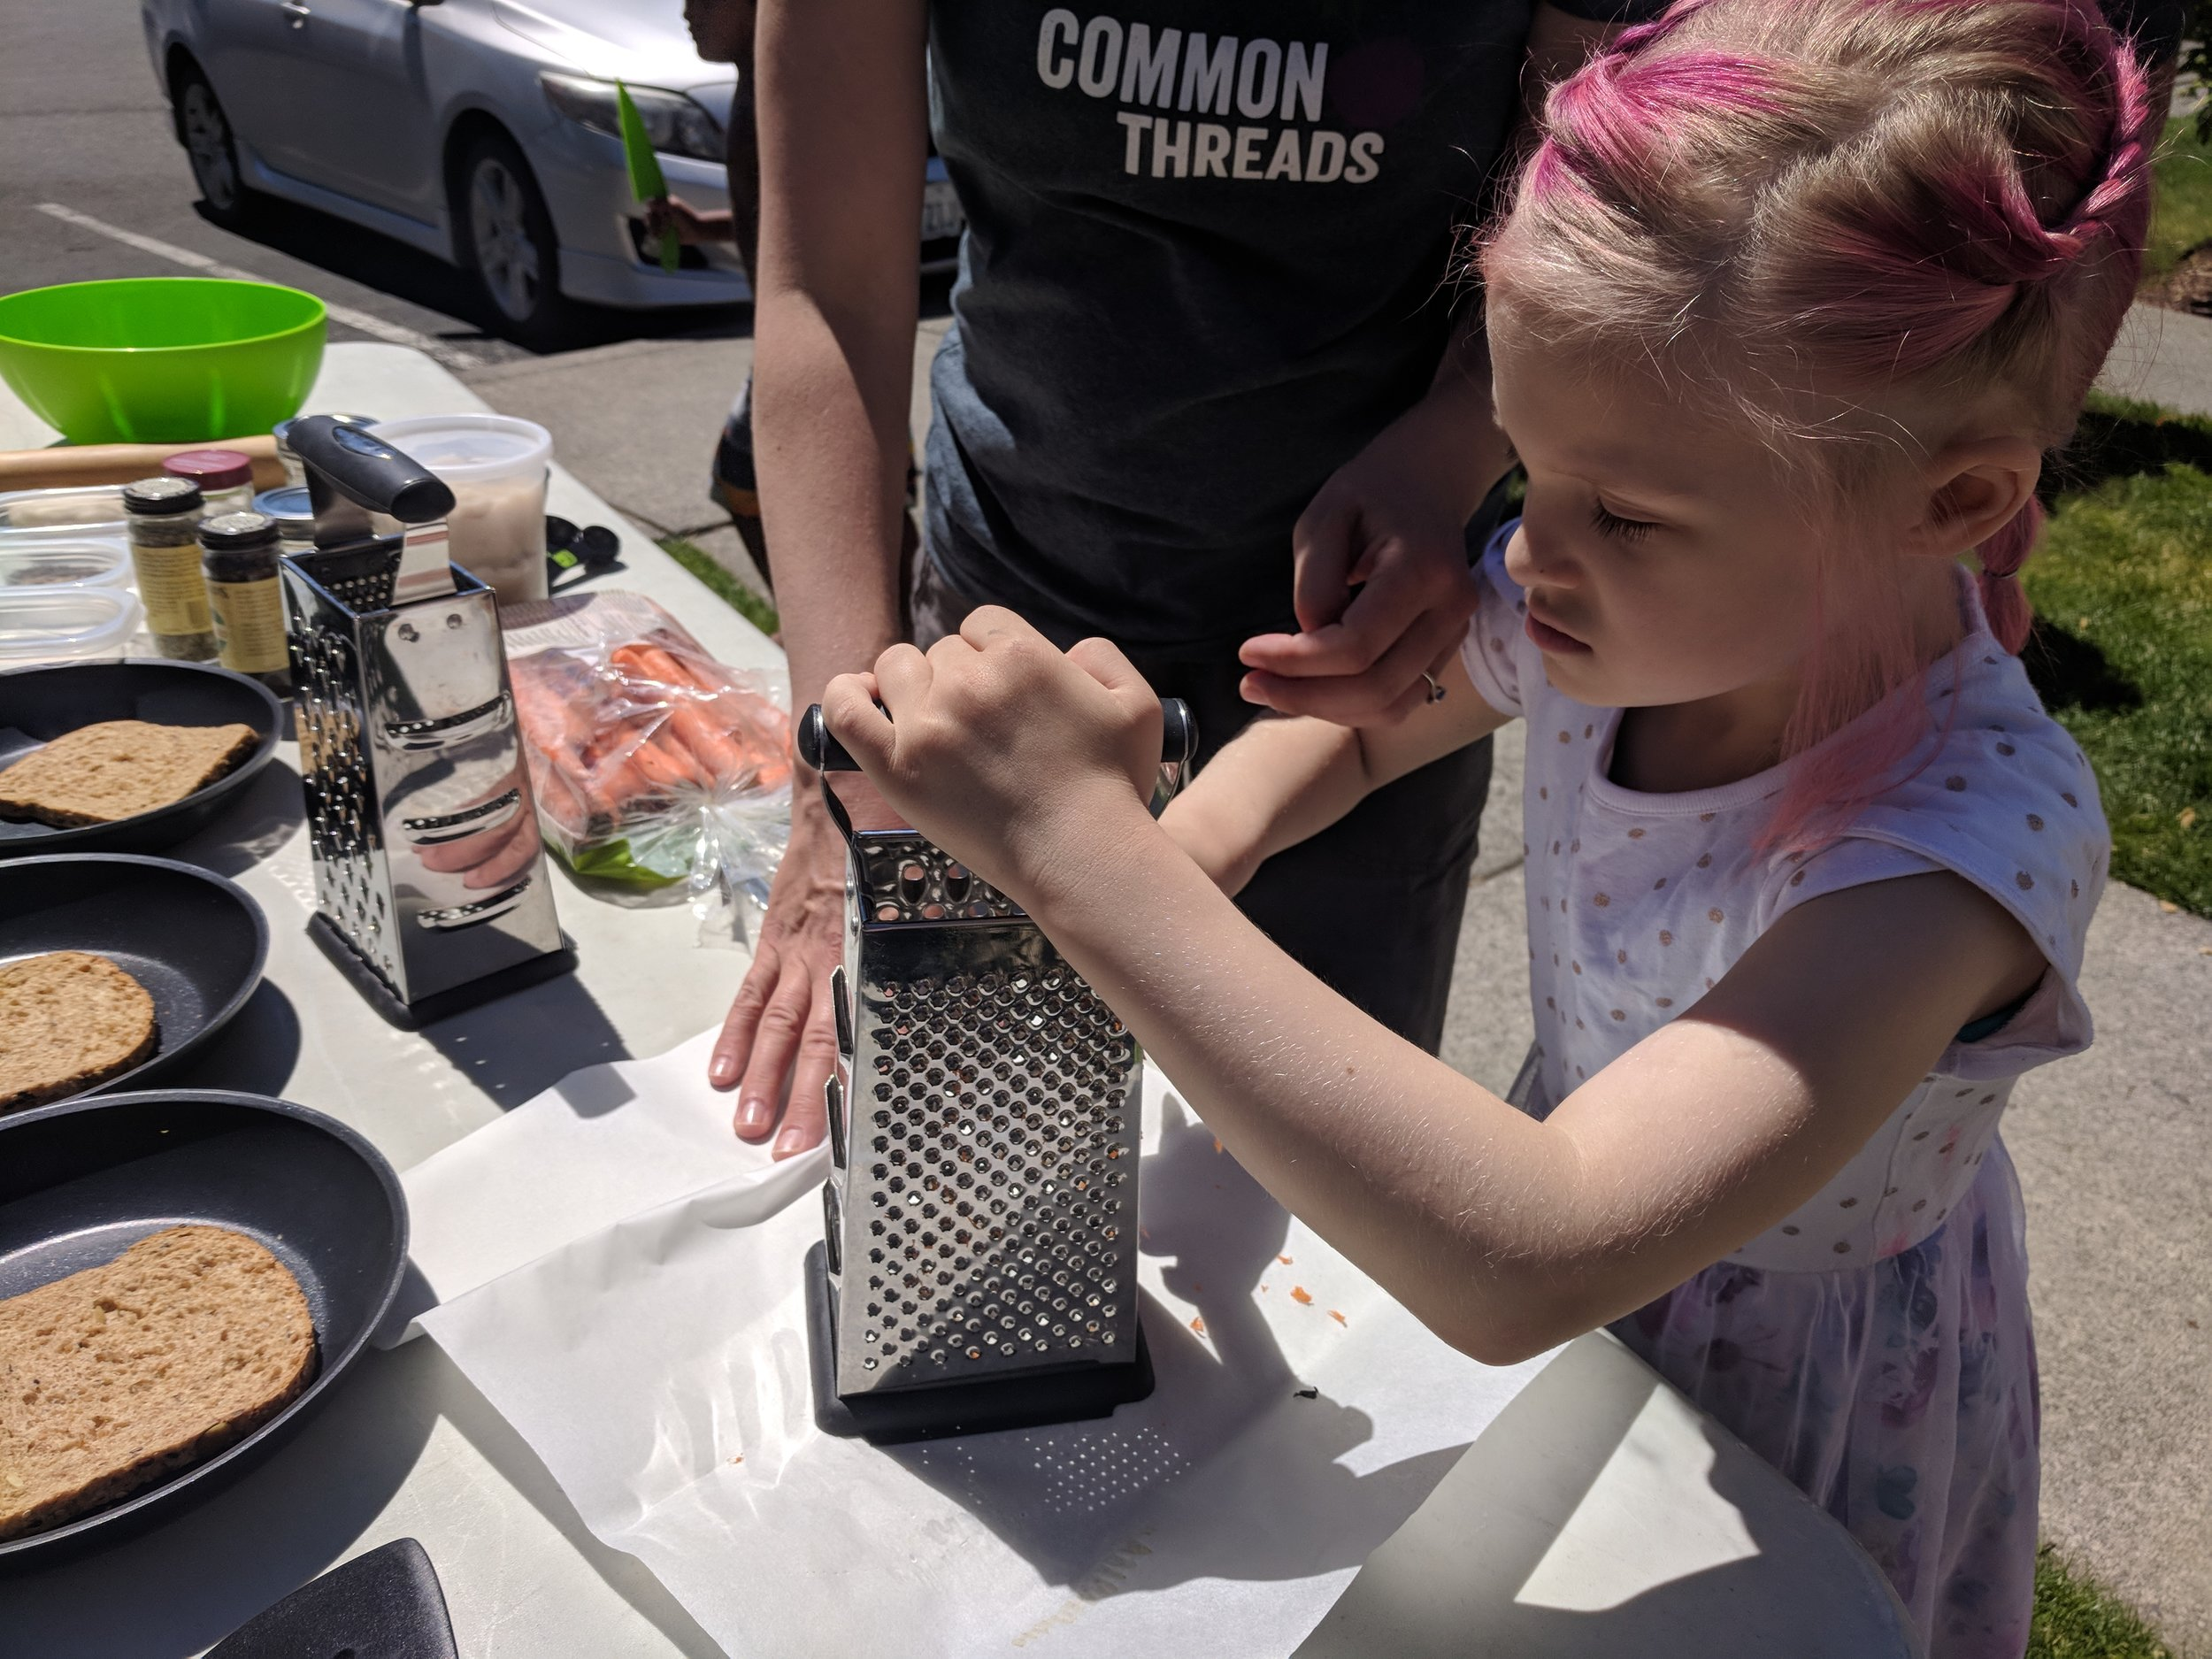 Participant of the Kids Supper Club program through Common Threads Farm, learning to shred carrots